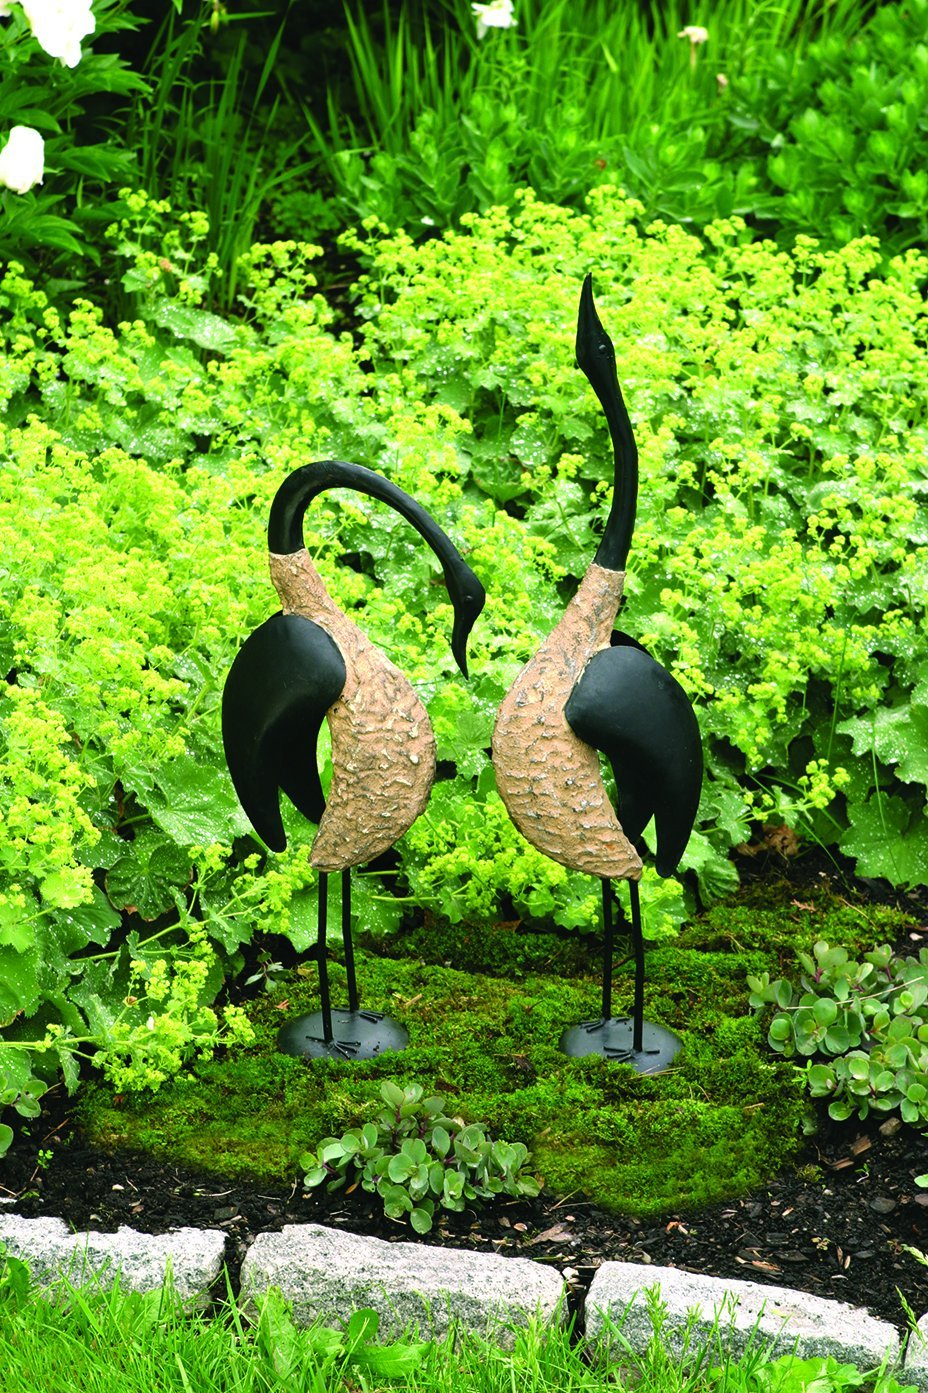 Happy Gardens -  Geese Pair; 1 Standing, 1 Bowing